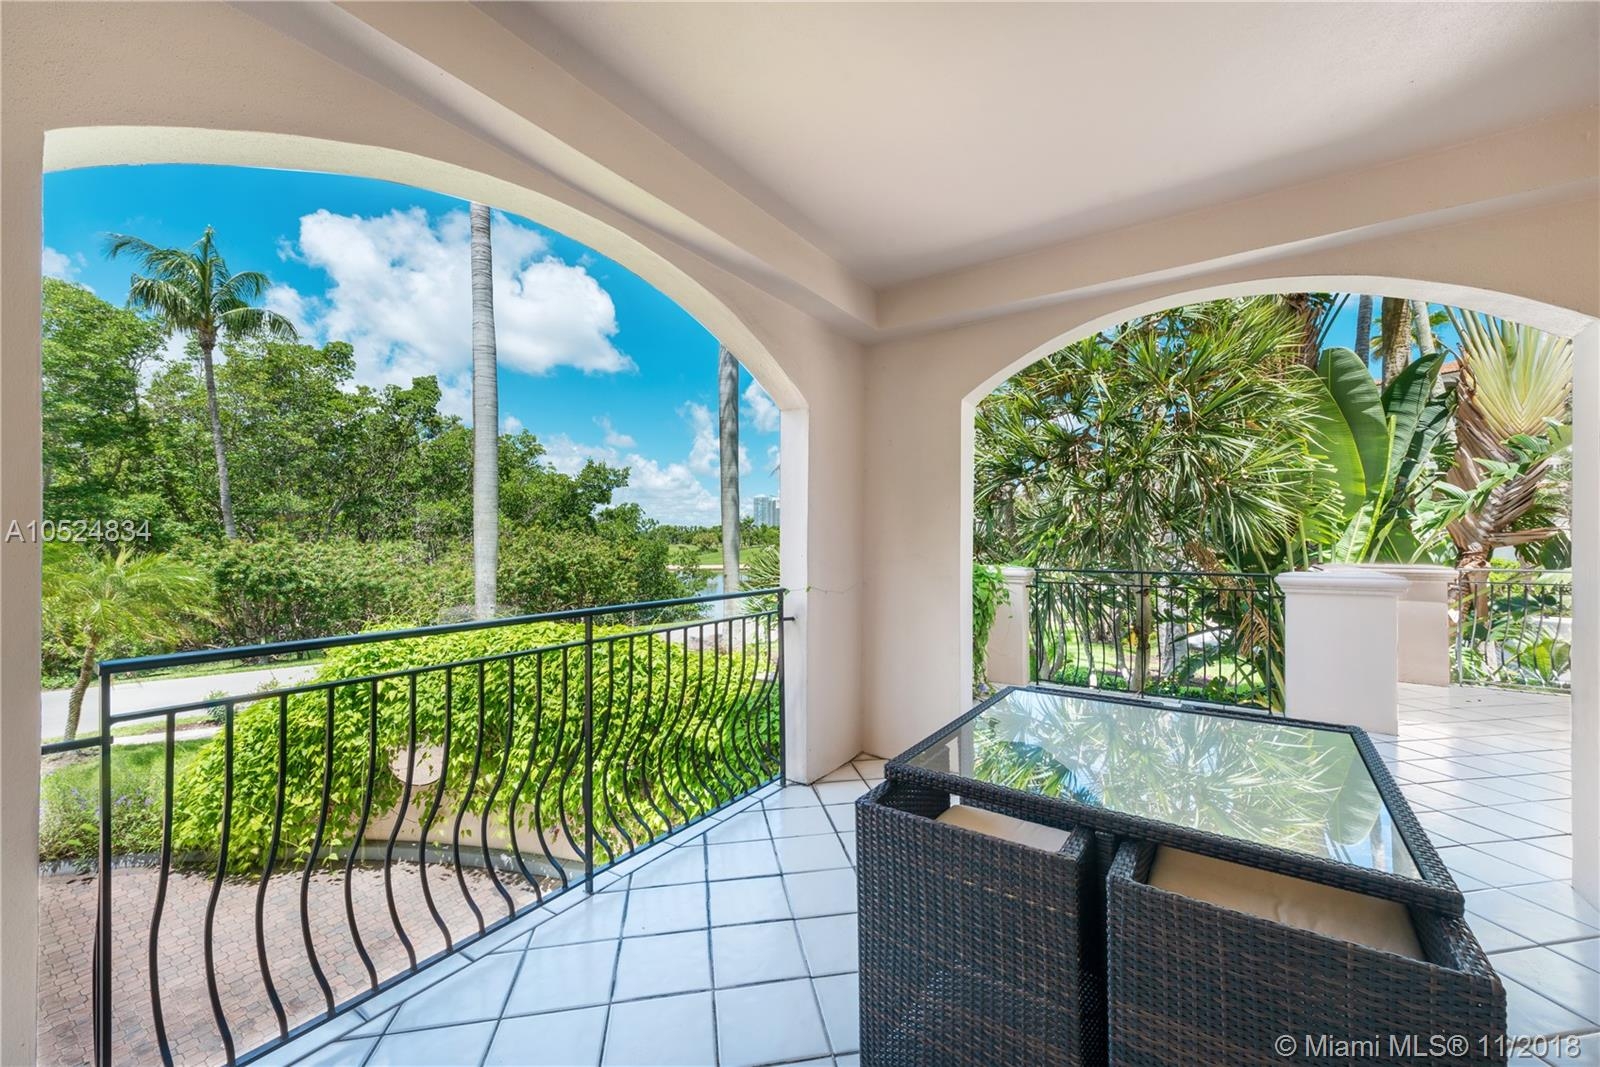 19211  Fisher Island Dr #19211 For Sale A10524834, FL